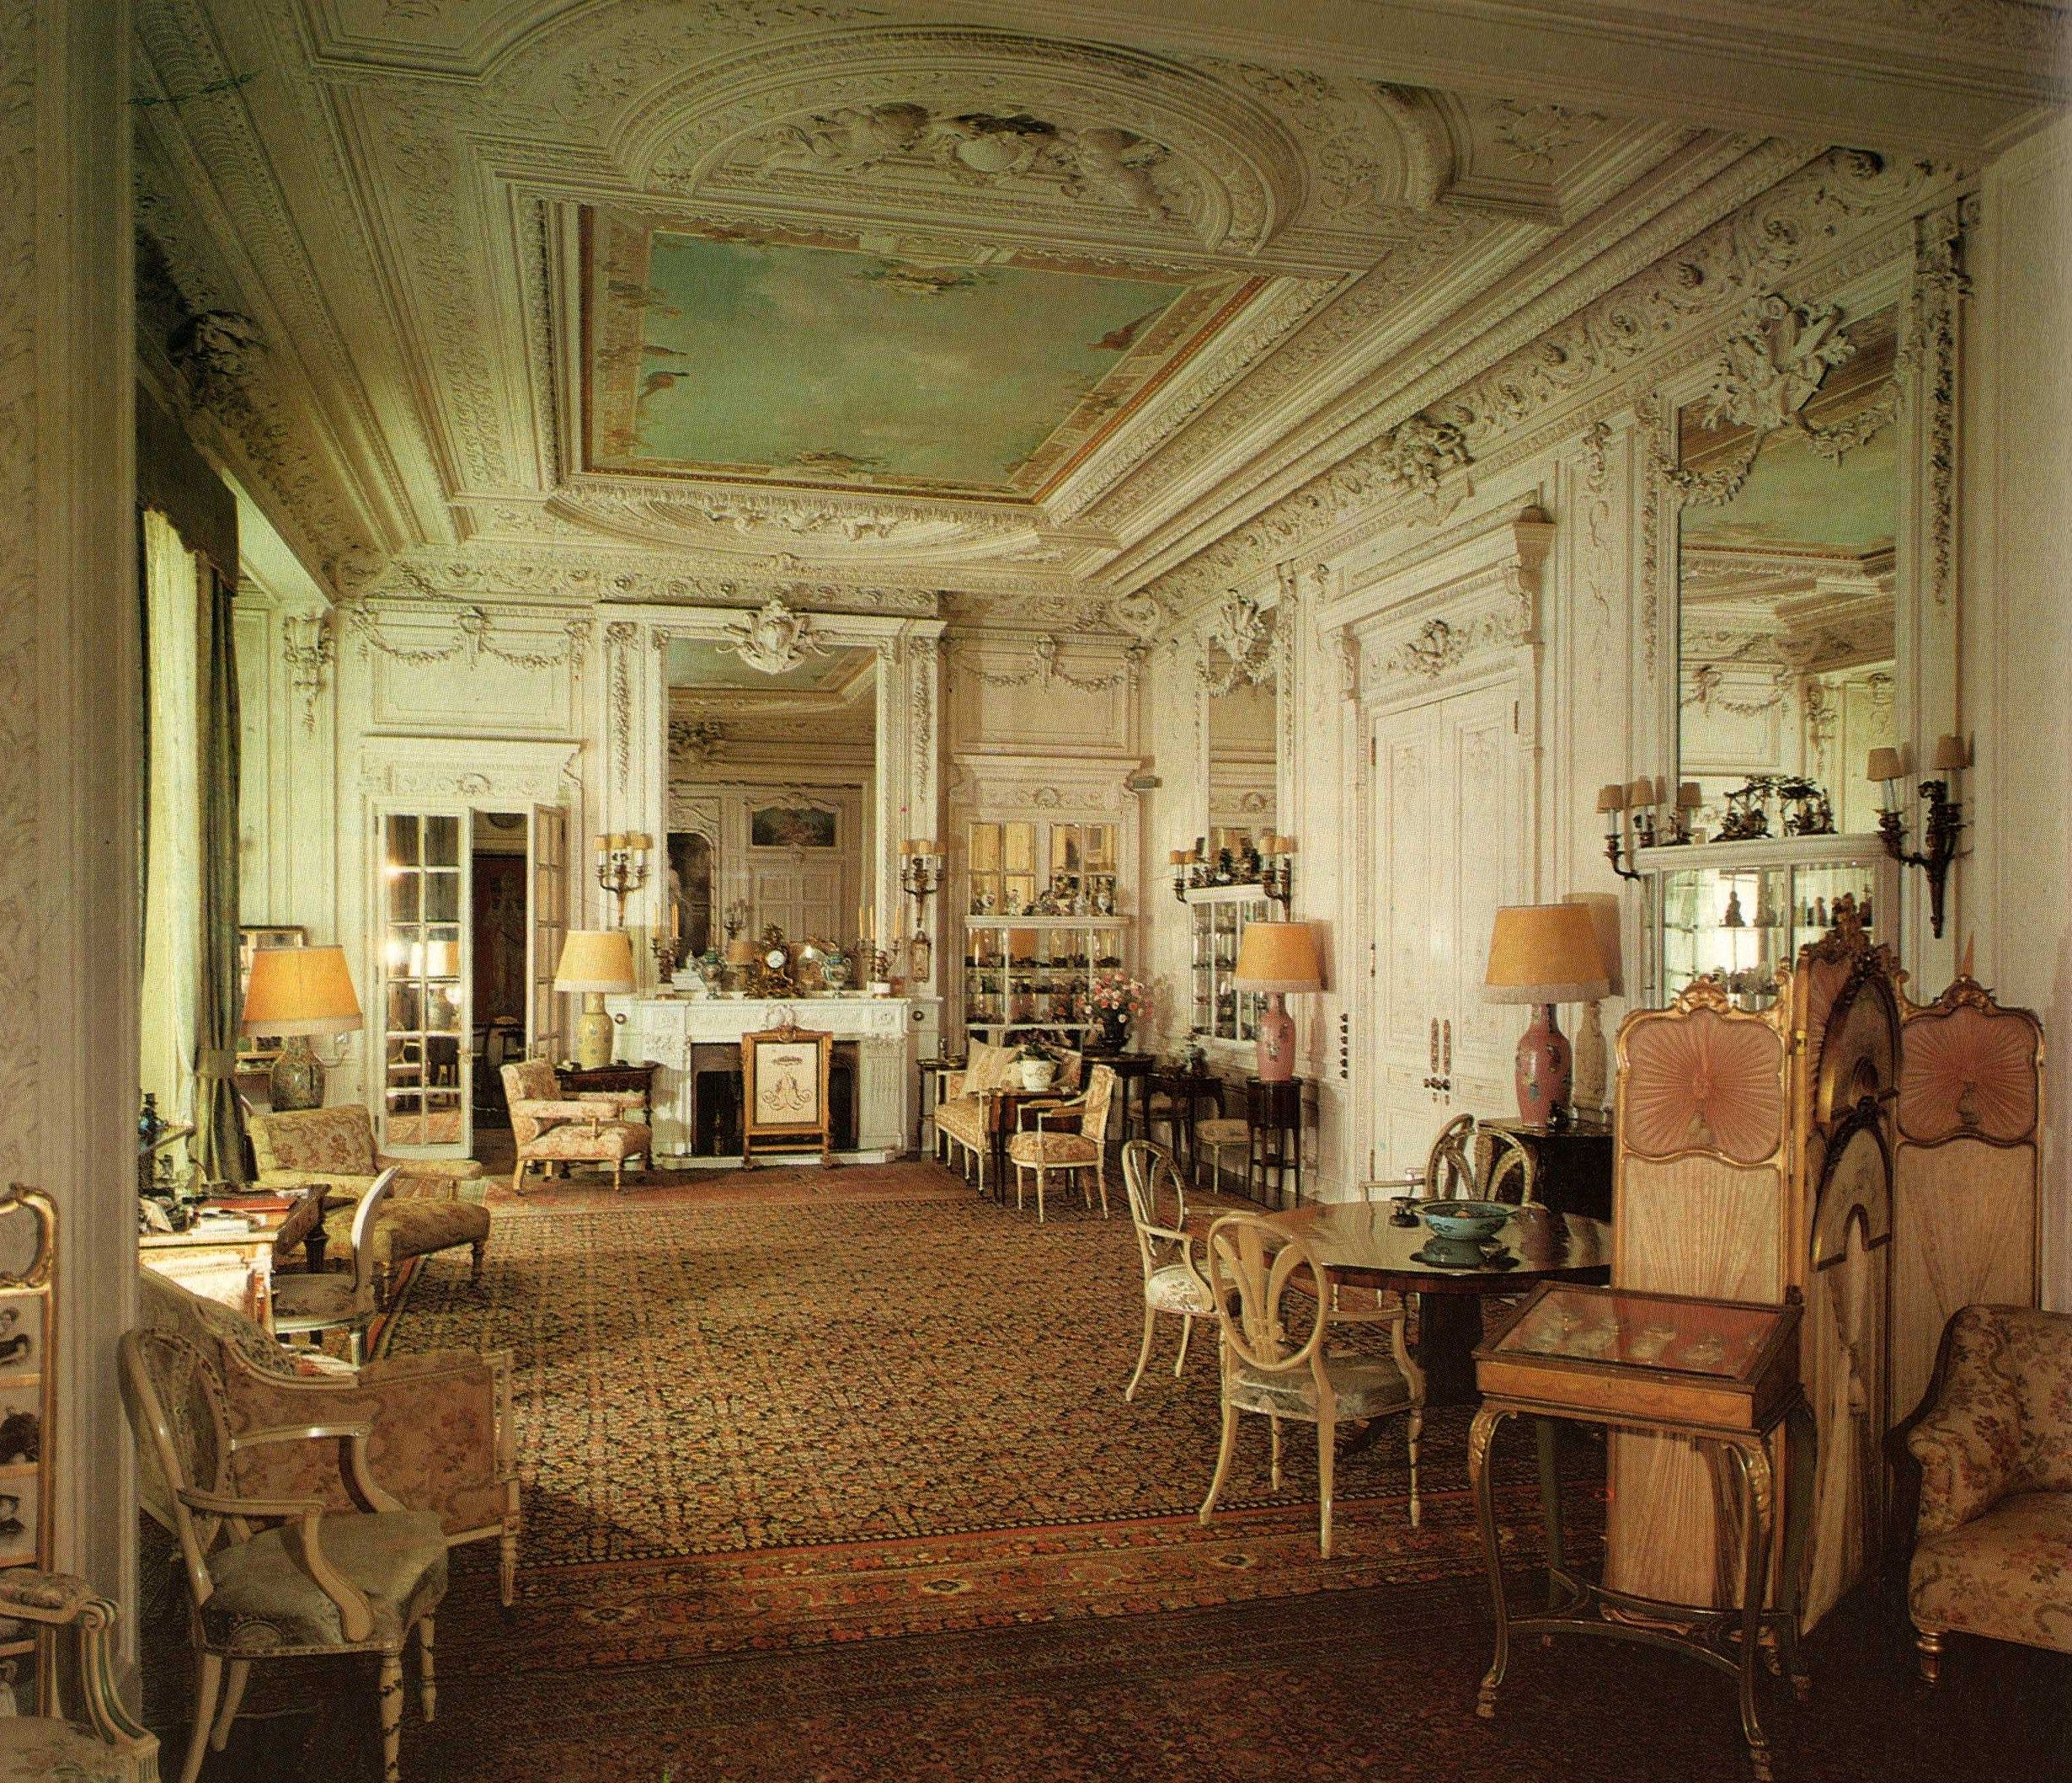 The drawing room sandringham house norfolk england for British house interior